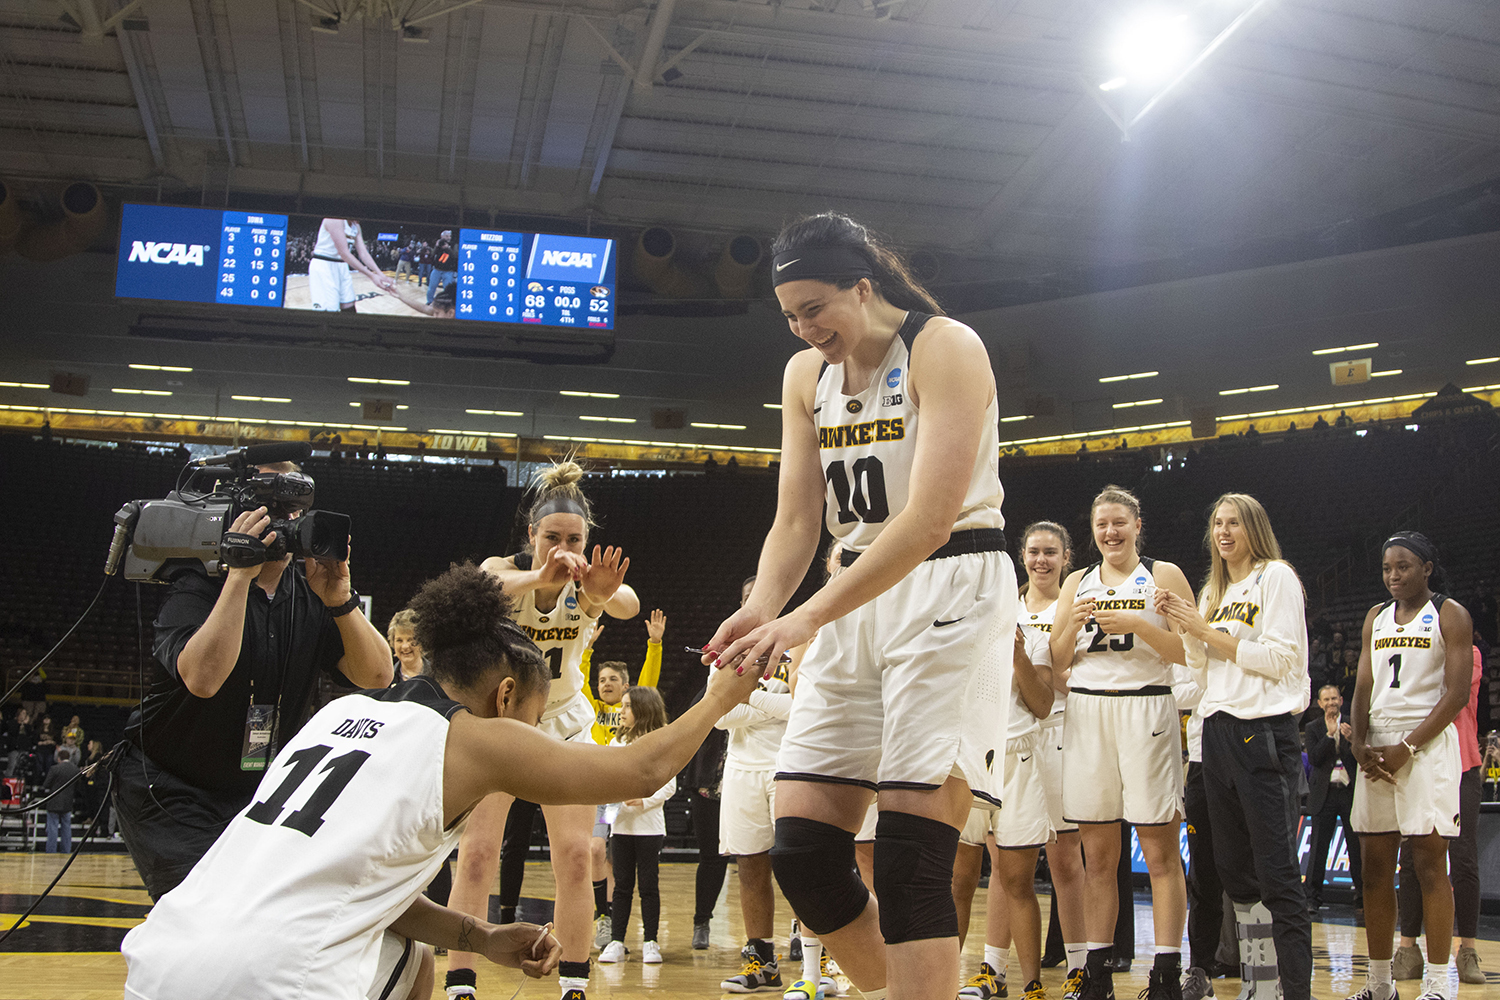 Iowa+center+Megan+Gustafson+%2810%29+is+presented+scissors+by+Iowa+guard+Tania+Davis+%2811%29+during+the+Iowa%2FMizzou+NCAA+Tournament+second+round+women%27s+basketball+game+in+Carver-Hawkeye+Arena++on+Sunday%2C+March+24%2C+2019.+The+Hawkeyes+defeated+the+Tigers%2C+68-52.+